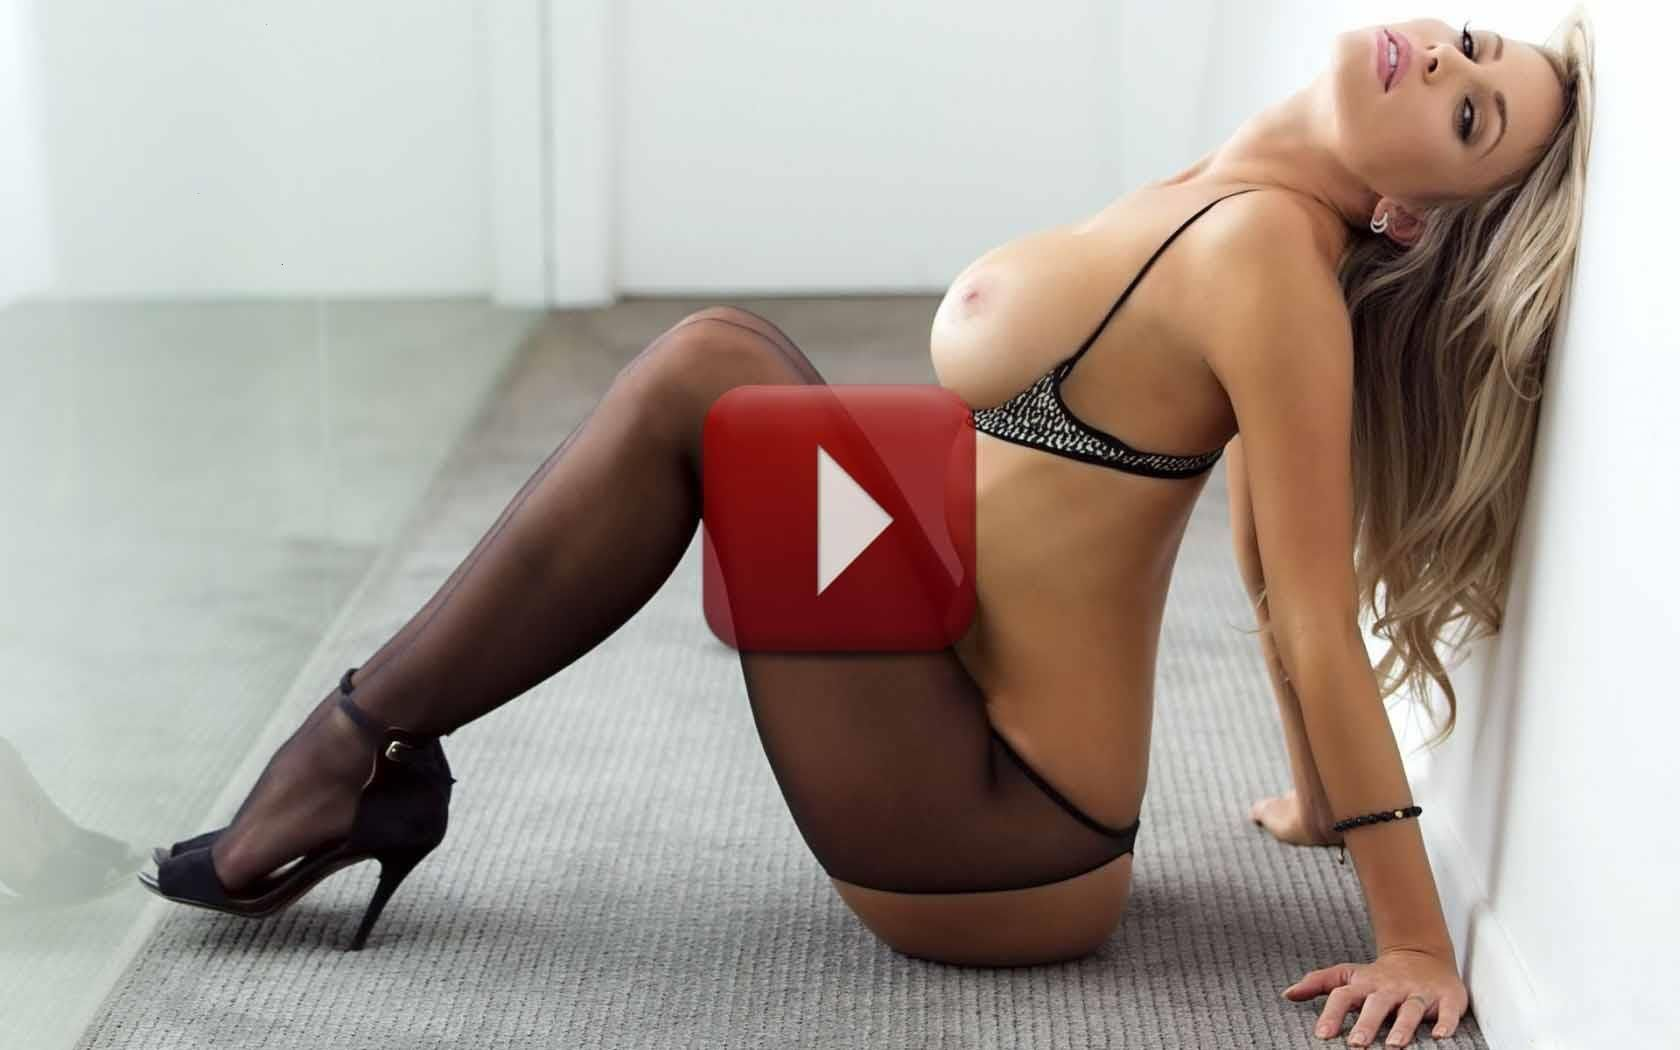 porn p. adult dating forum. Sexy Videos Click here. #adult #dating